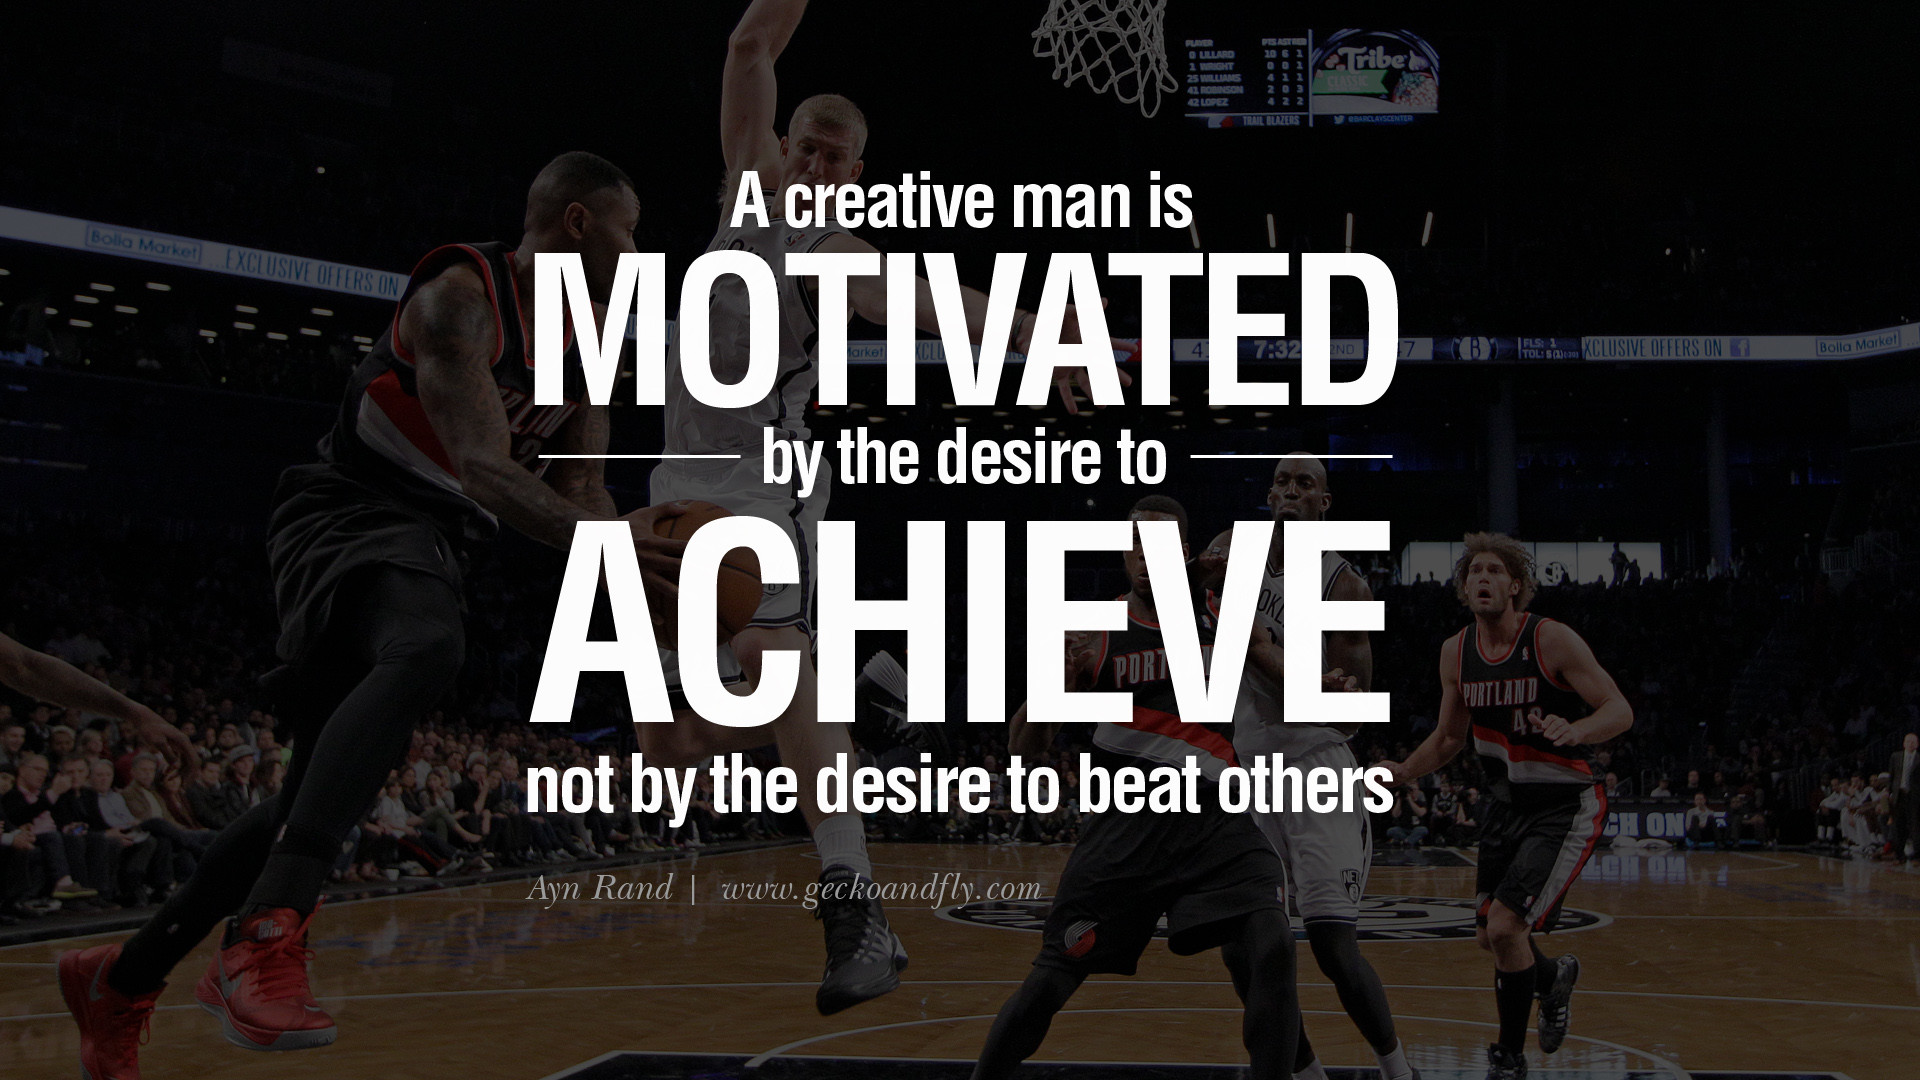 Inspirational Sport Quotes Wallpaper: Athlete Motivation Wallpapers (71+ Images